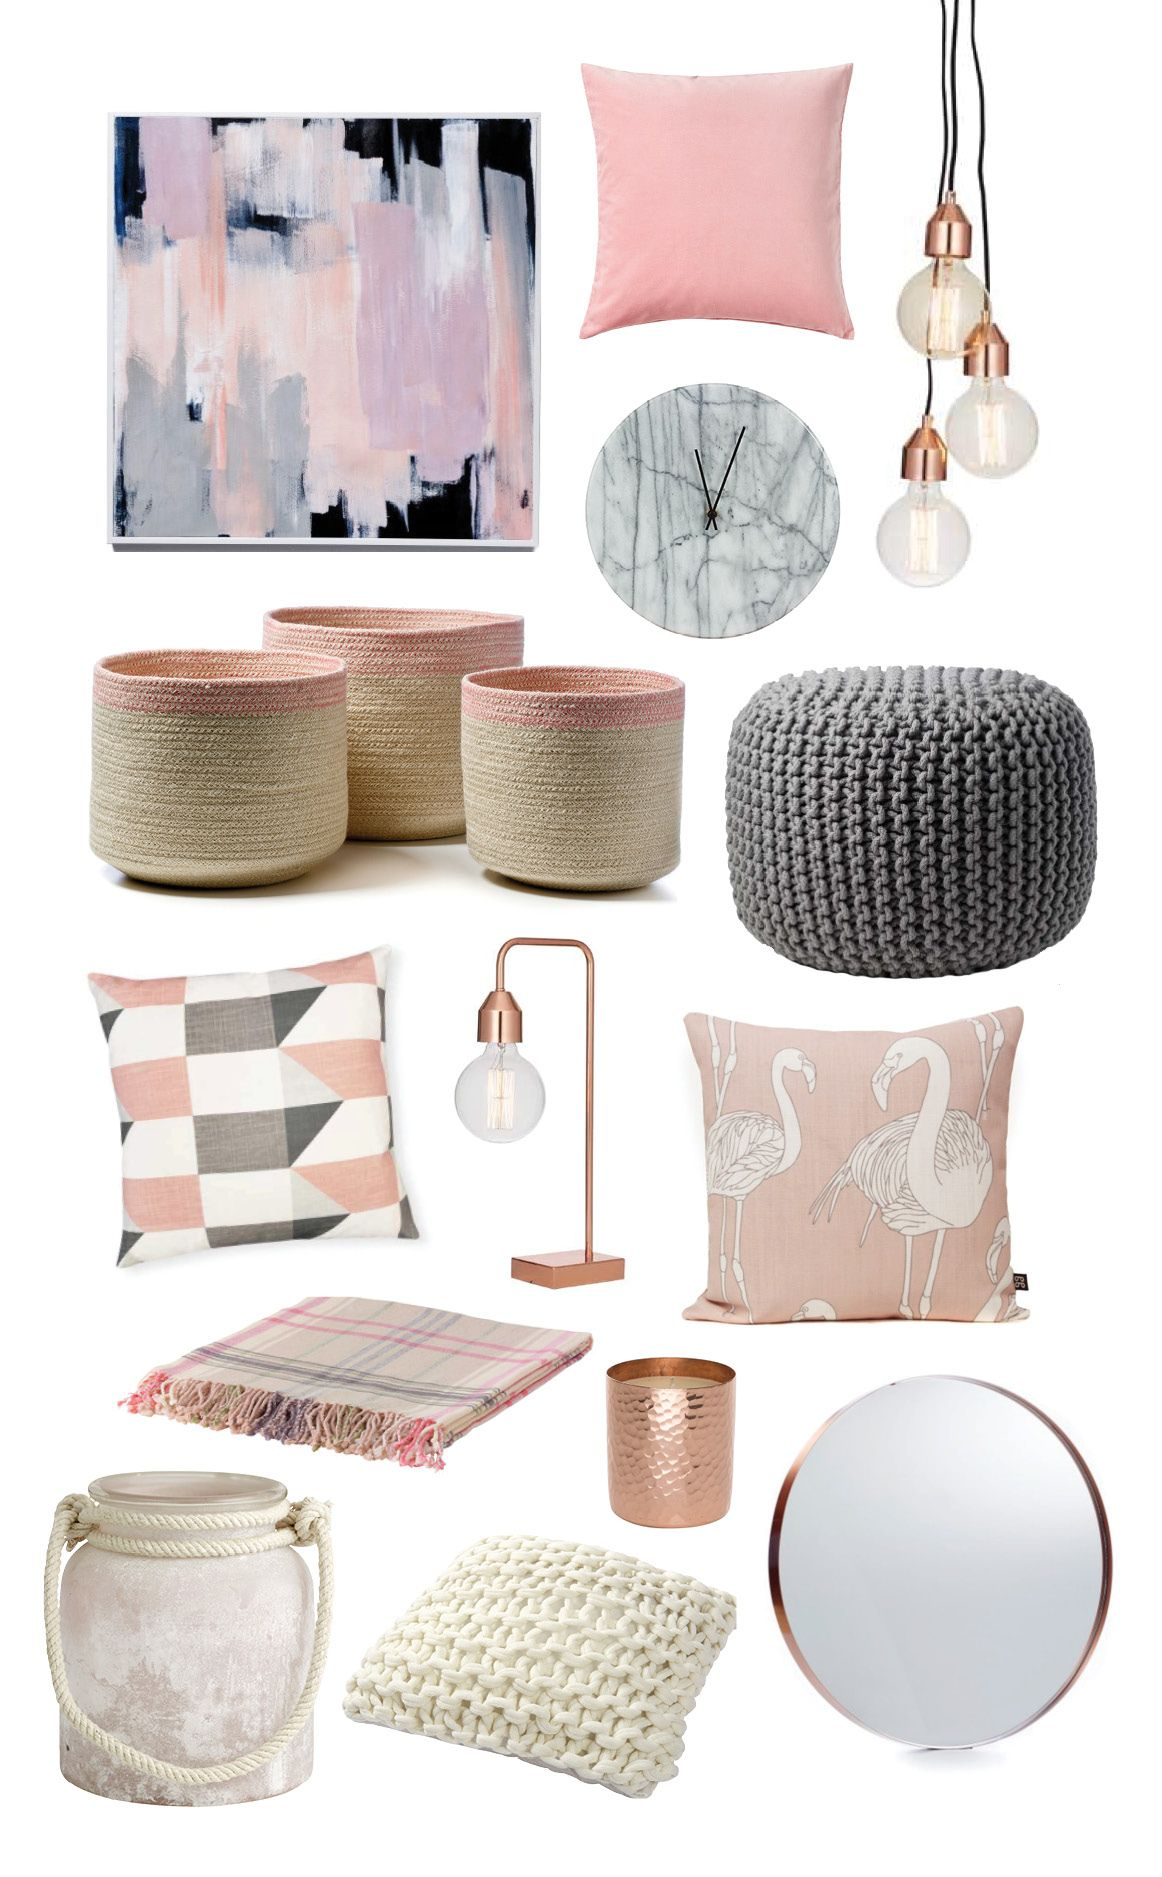 Room Decor Accessories Trending Items Blush Pink Click Through For Stockists